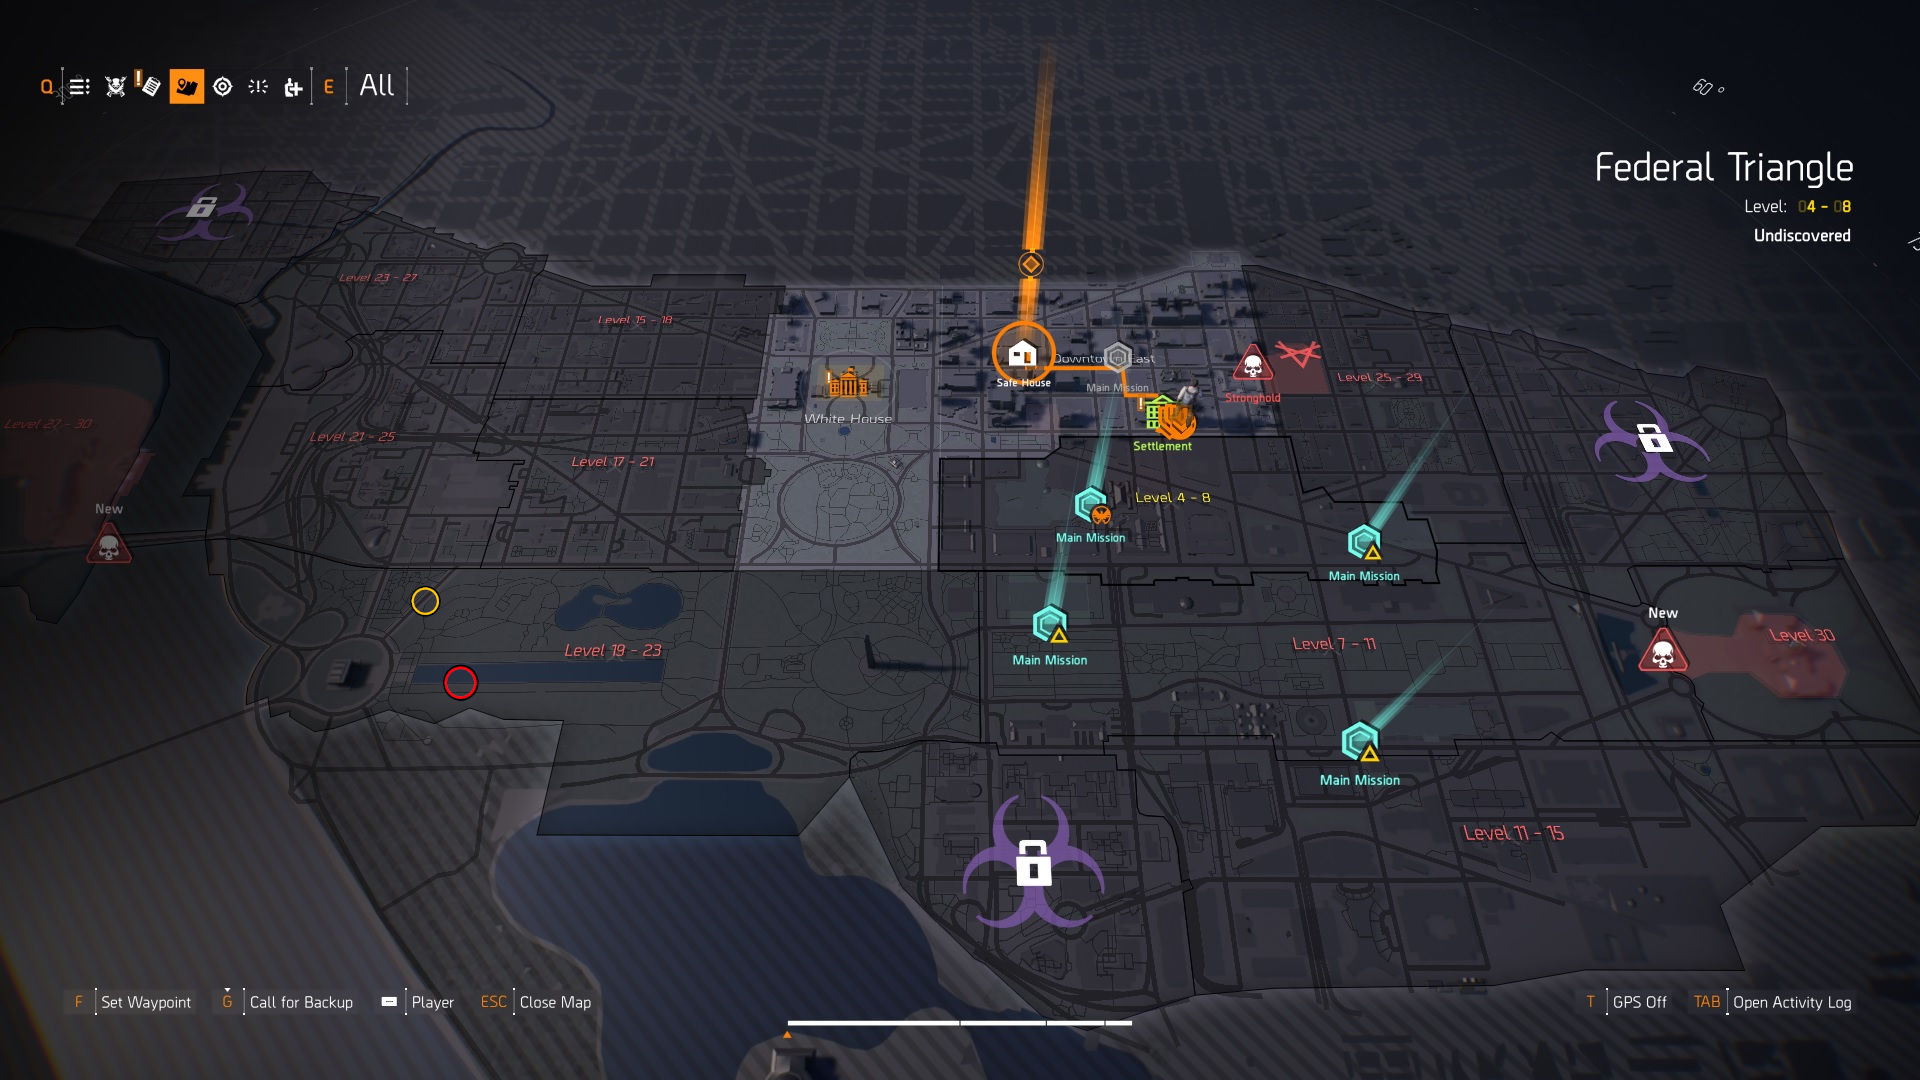 The Ghoul location in The Division 2